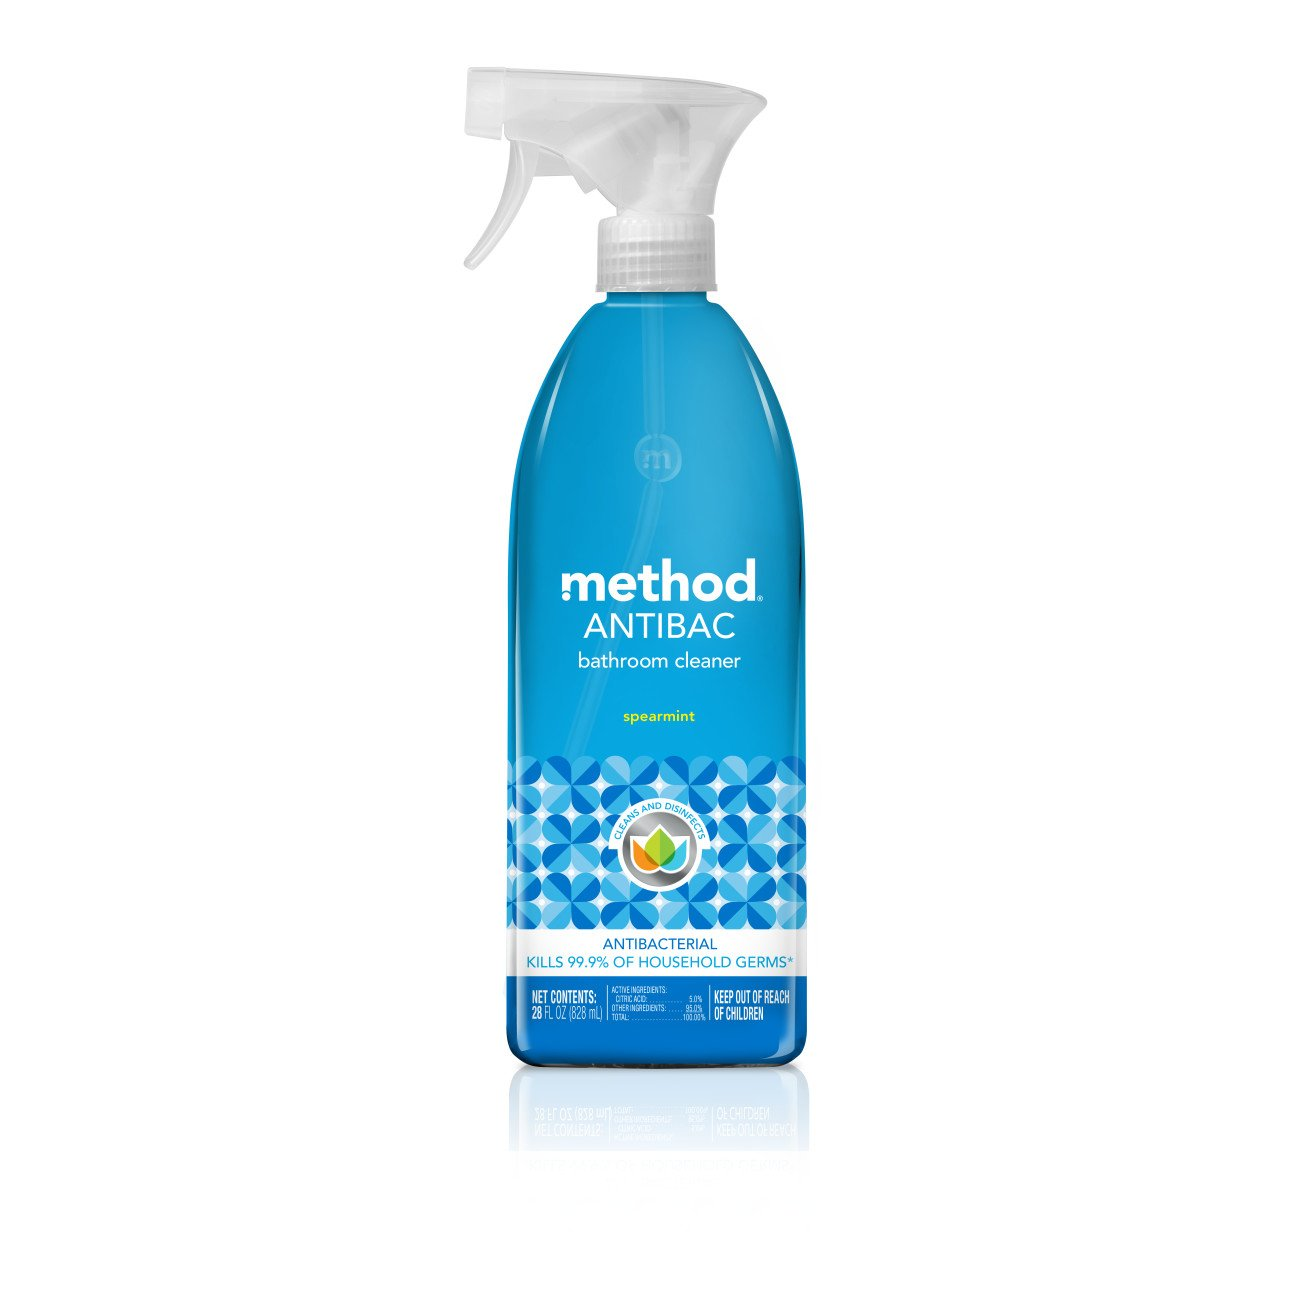 Amazoncom Method Foaming Bathroom Cleaner Eucalyptus Mint - Method bathroom cleaner ingredients